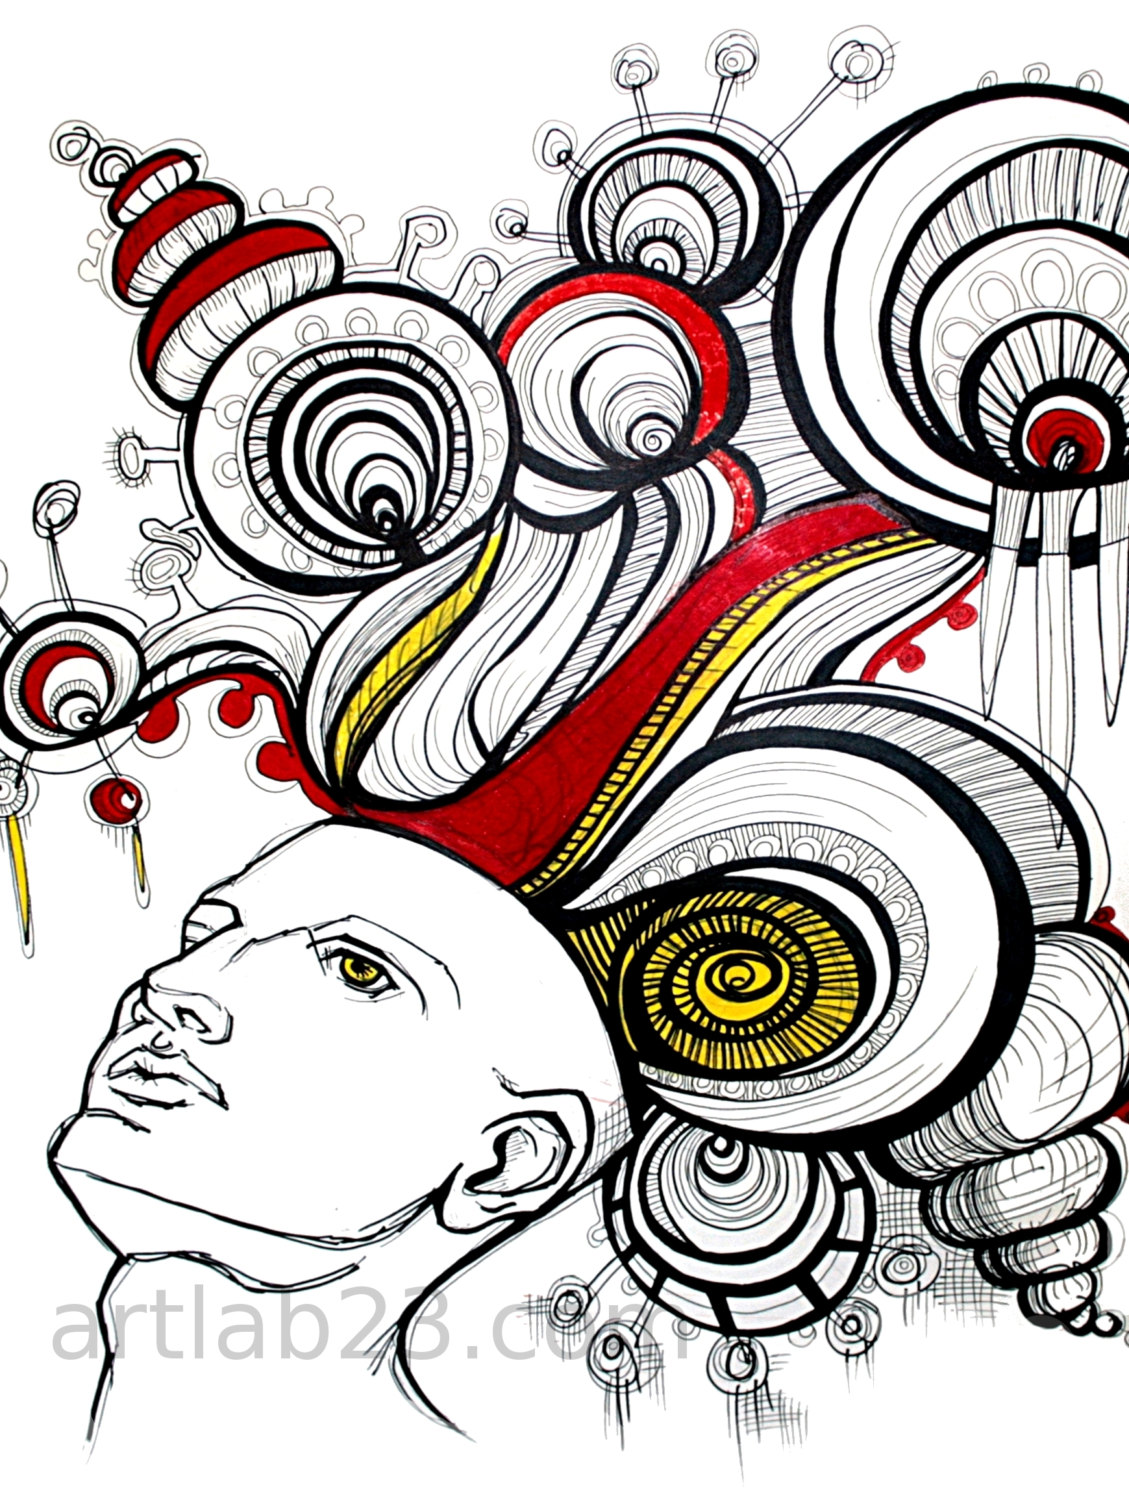 1129x1500 Dreaming Man Art Print 8x10 Psychedelic Drawing Ink By Artlab23